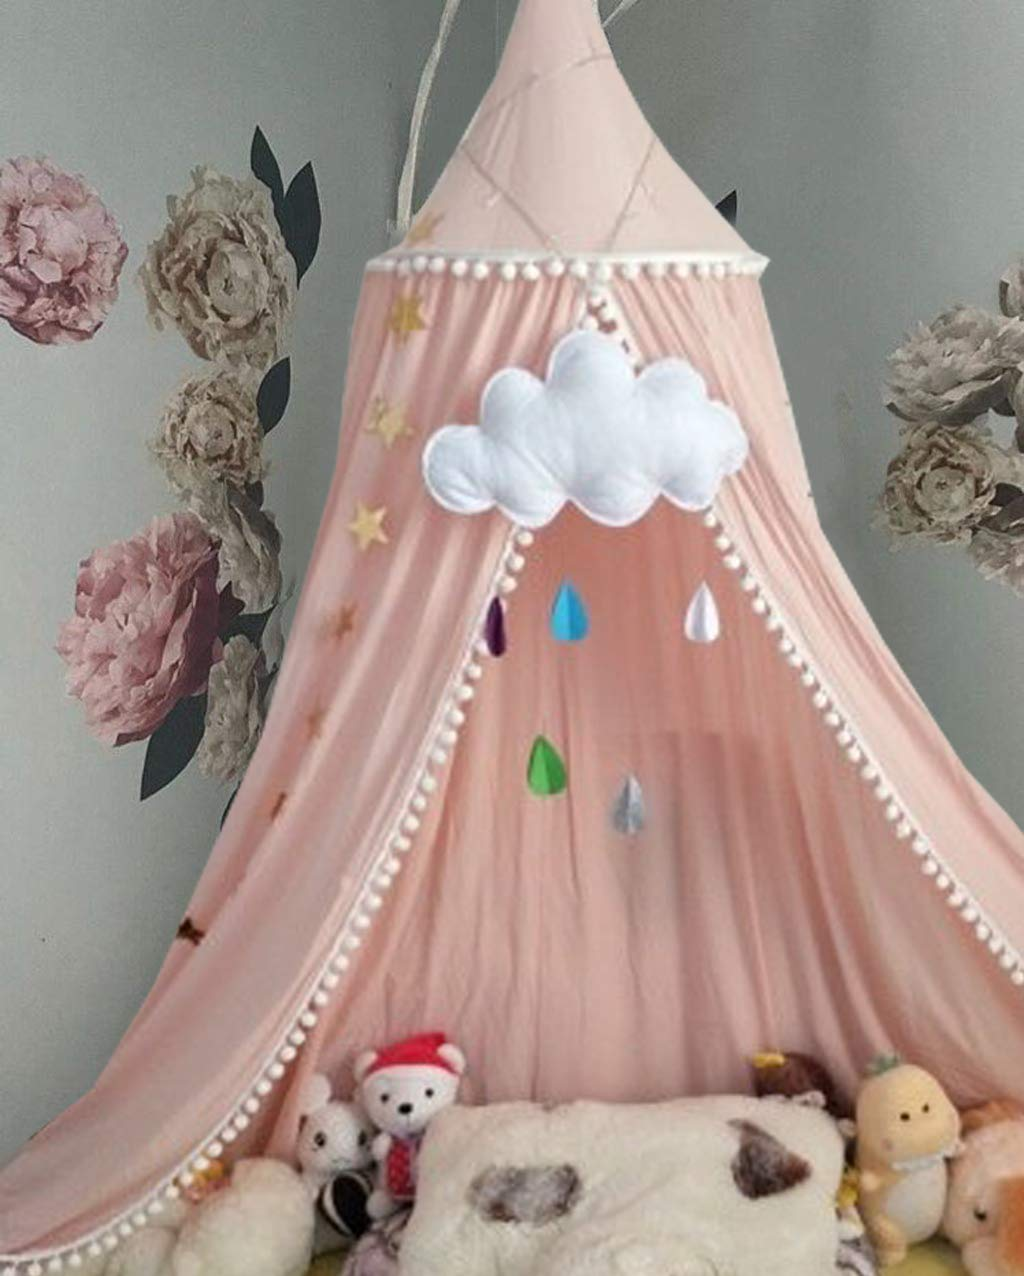 Bed Canopy for Girls Bed with Pom Pom, Cotton Dome Mosquito Net for Baby, Kids Indoor Outdoor Playing Reading, Bedroom Decoration (Pink) by OldPAPA